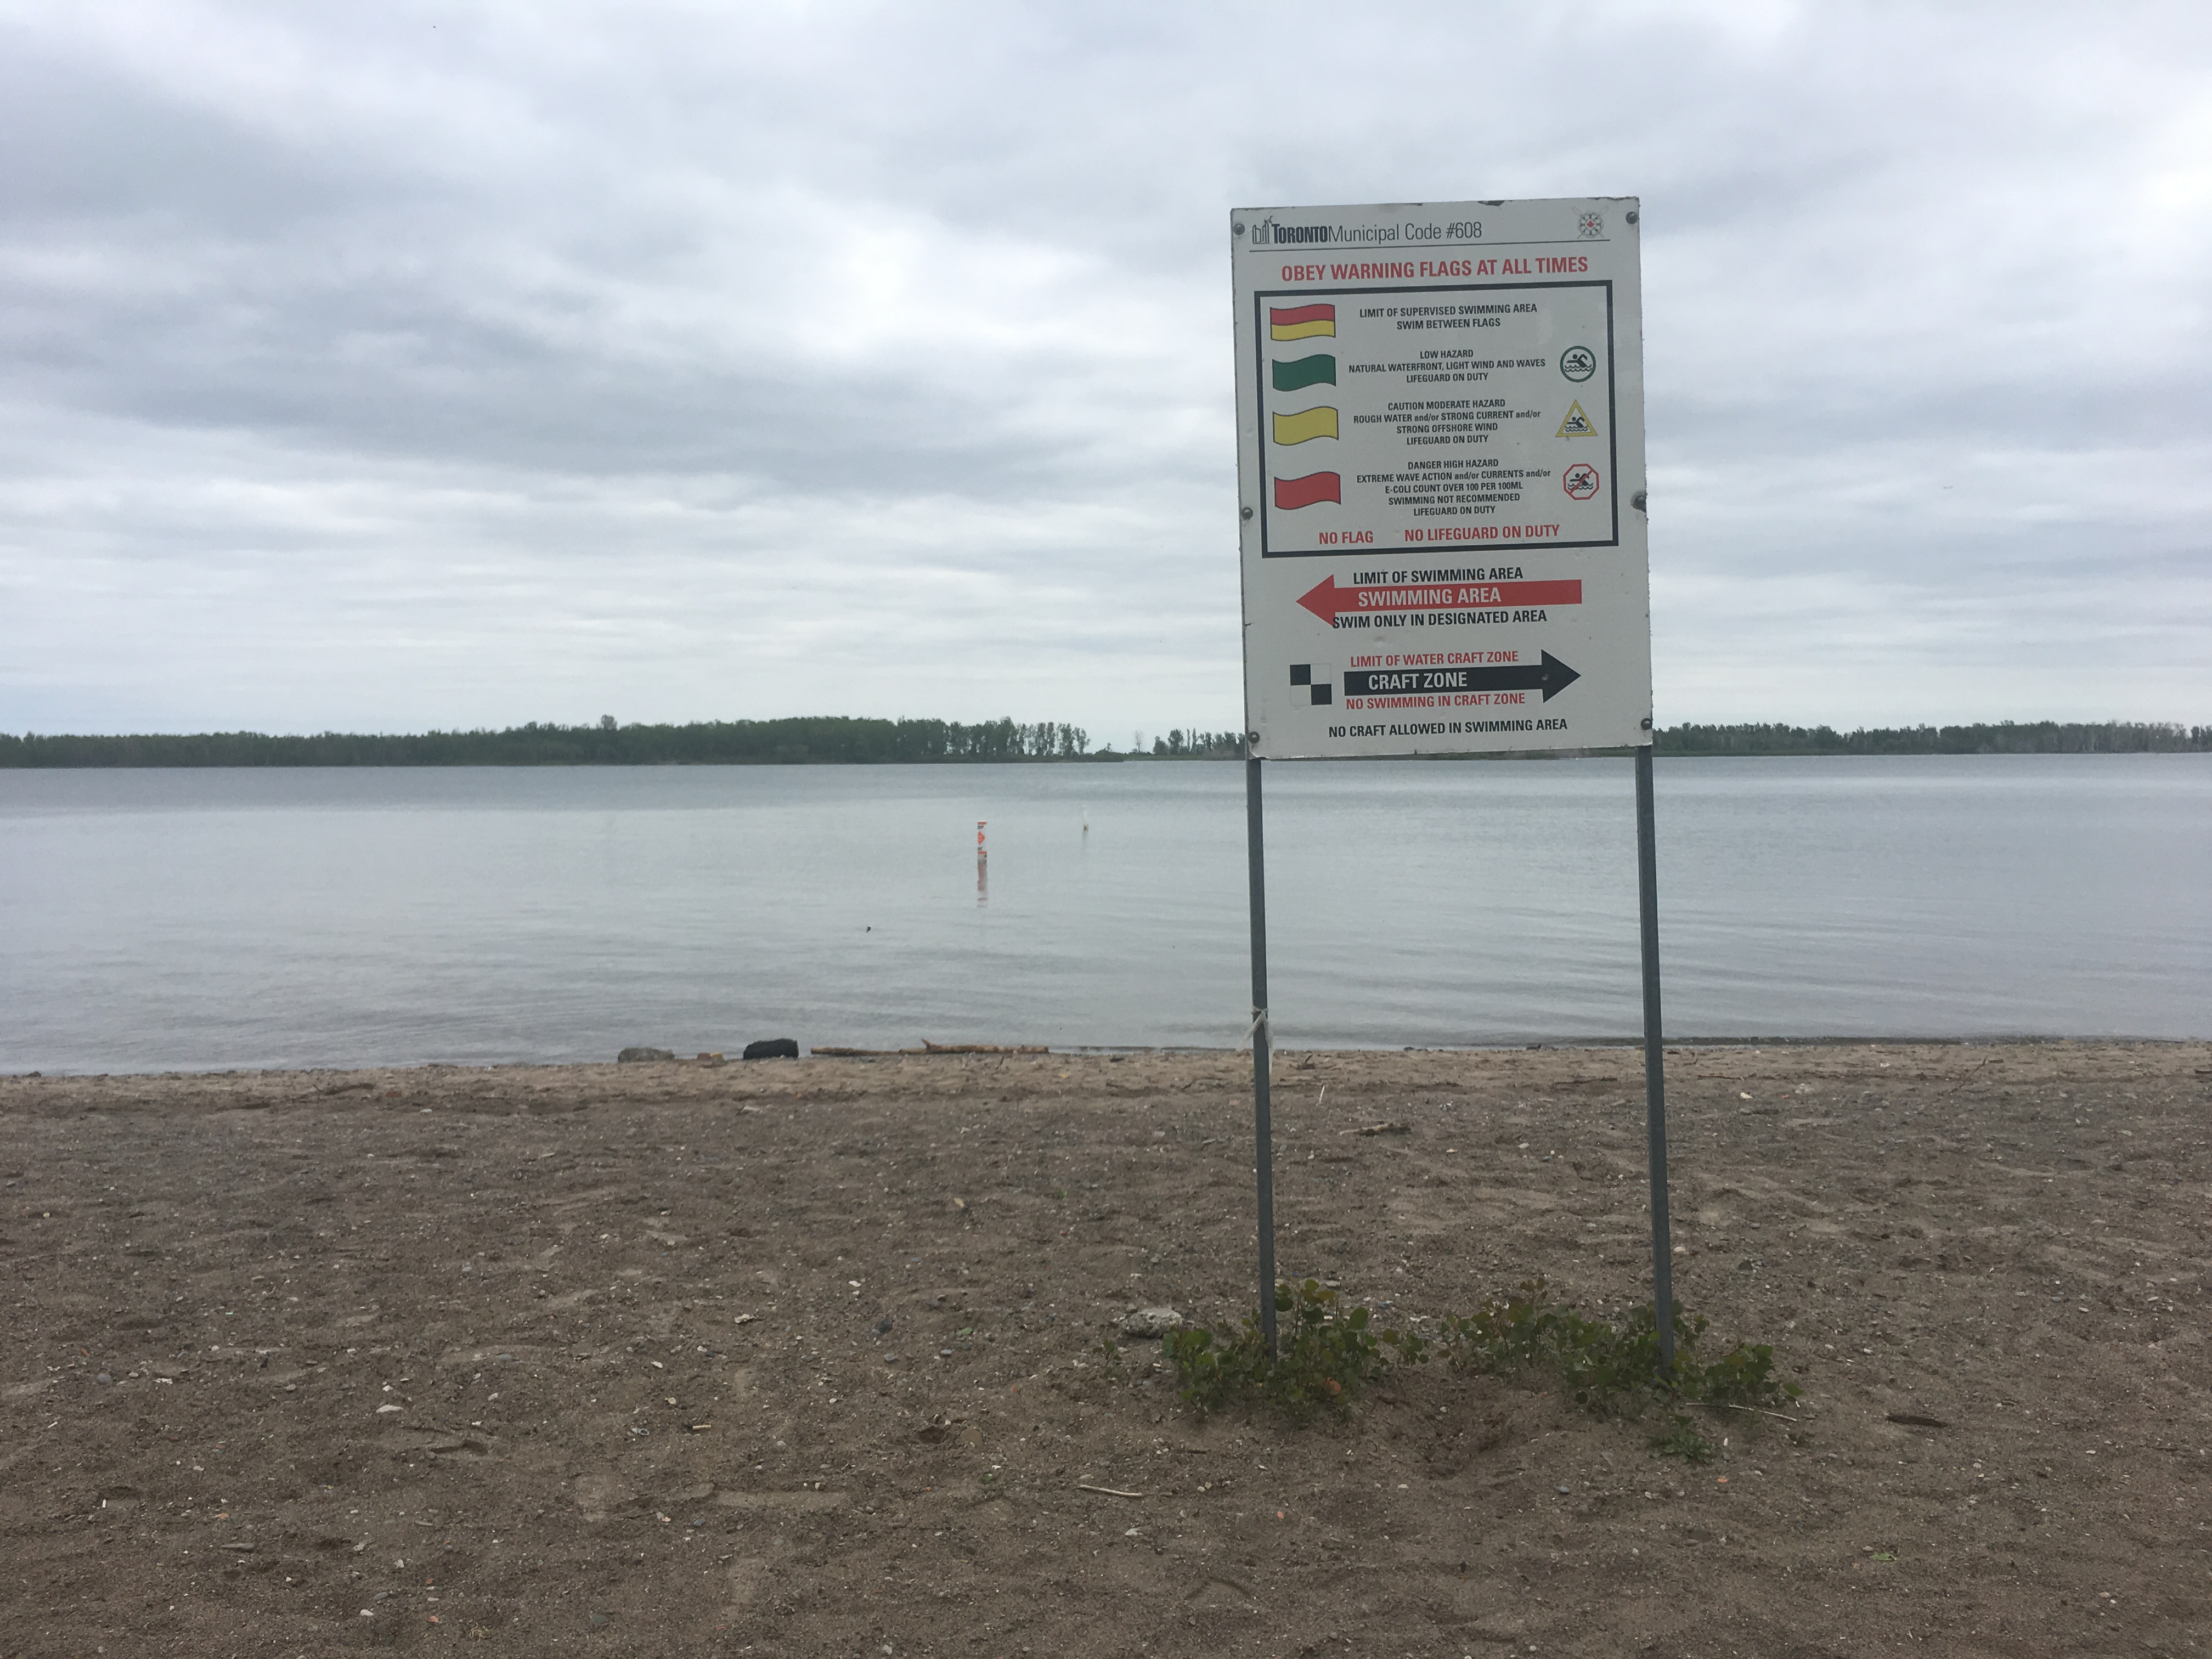 """2:13 p.m. June 5, 2018. On Tuesday, one beach sign tells visitors to """"Obey Warning Flags at all times"""" and """"no flag... no lifeguard on duty,"""" nearby the station where lifeguards sat."""